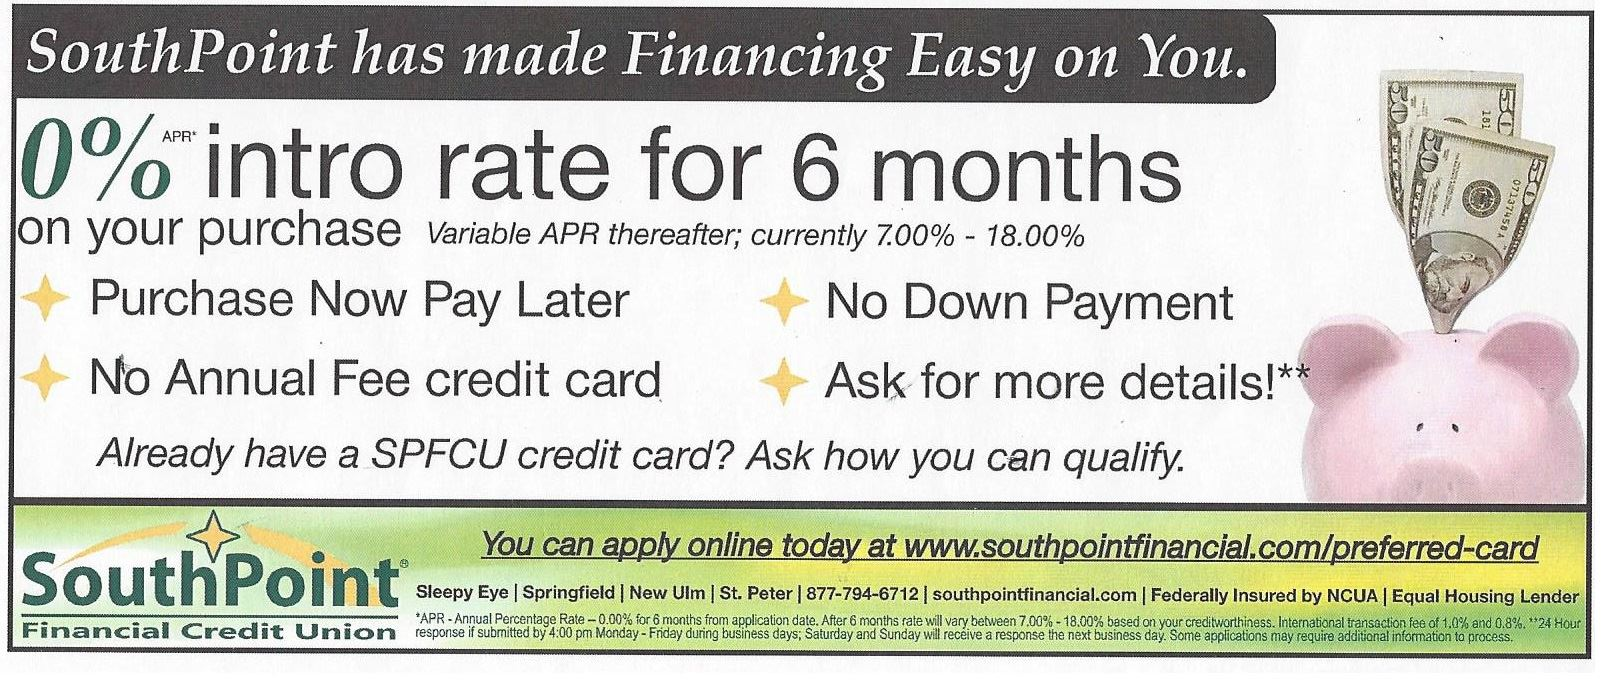 Financing with Southpoint Financial